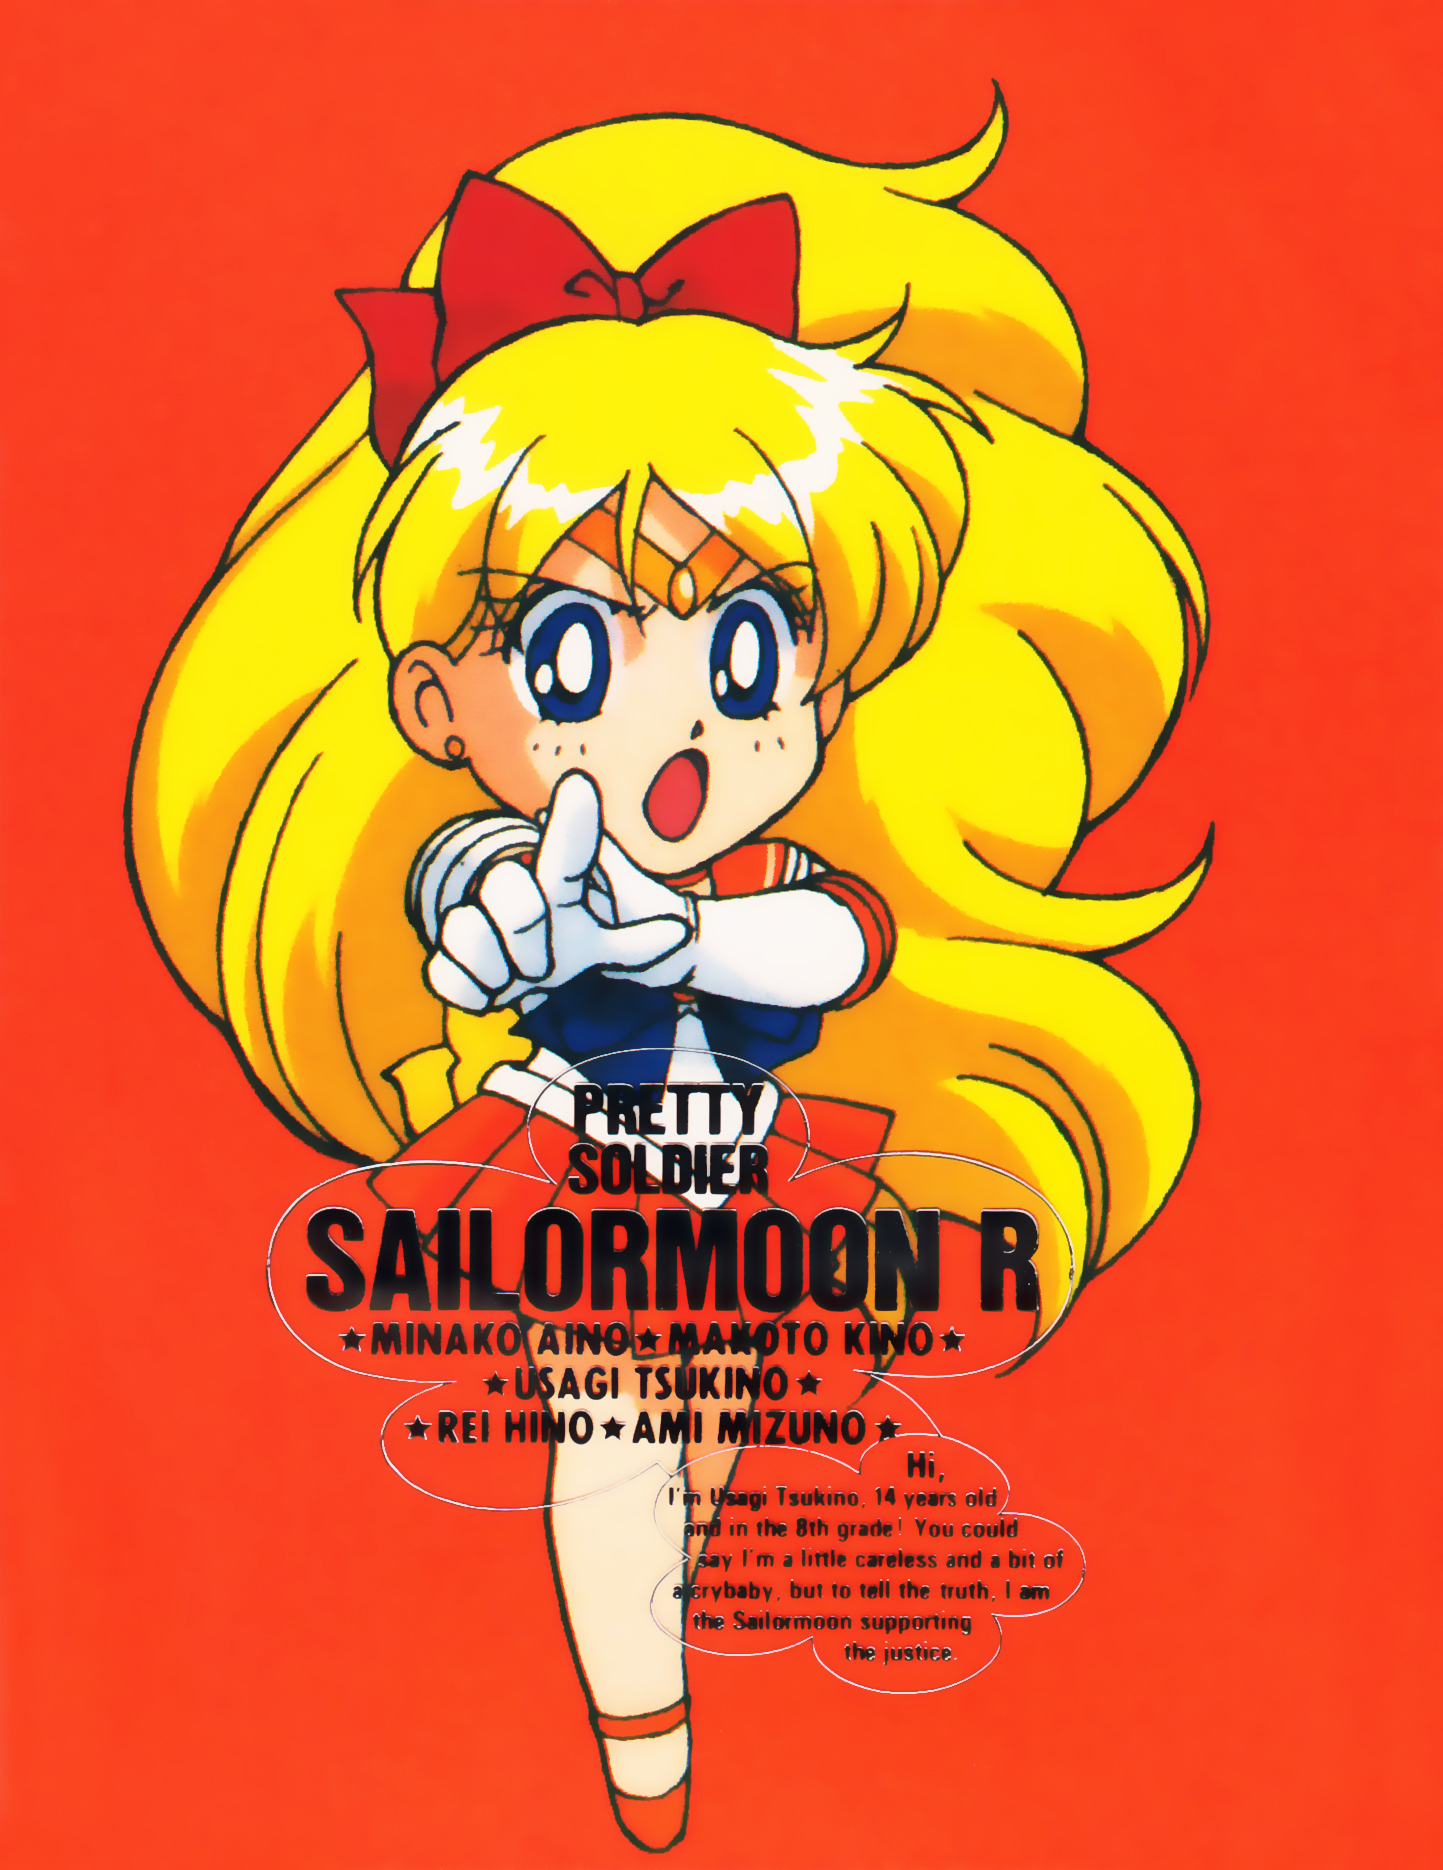 Sailor-moon-r-seika-notepad-05